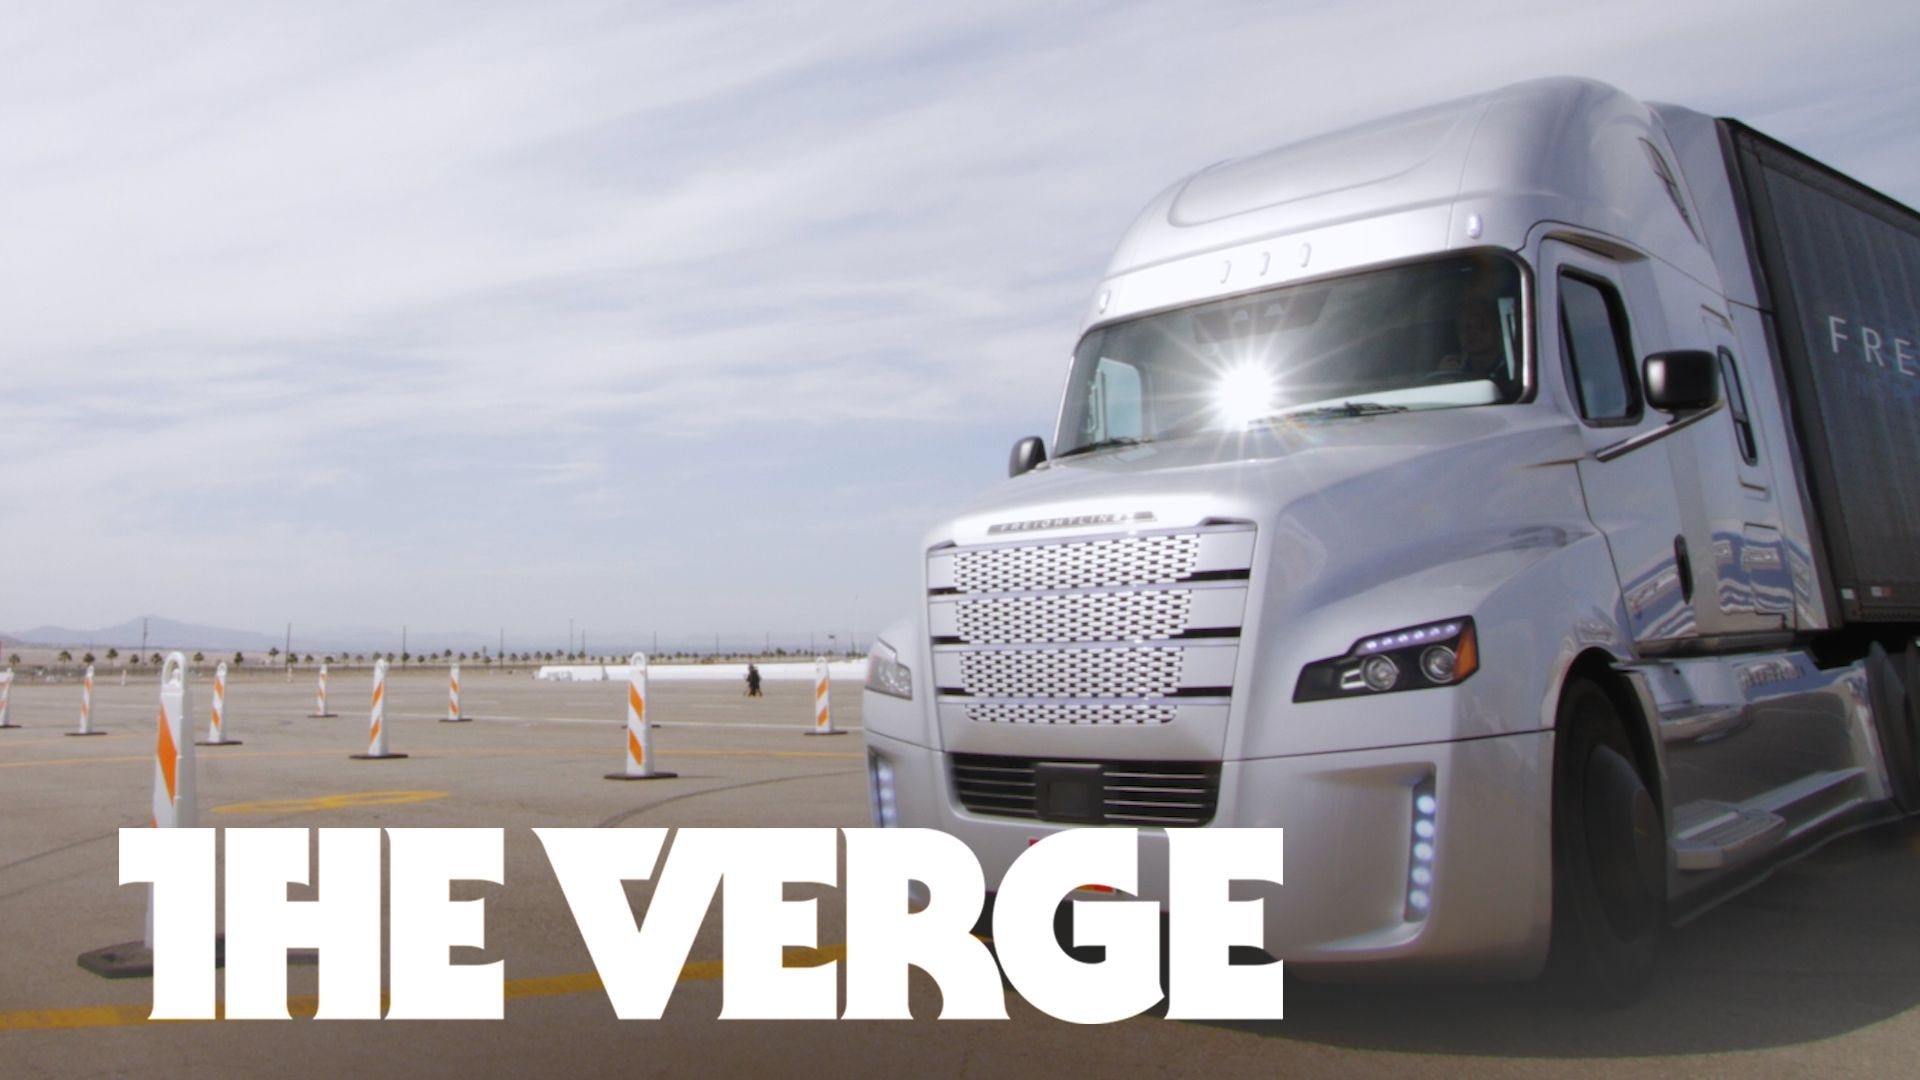 Uber S Self Driving Truck Company Just Completed Its First Shipment 50 000 Cans Of Budweiser The Verge